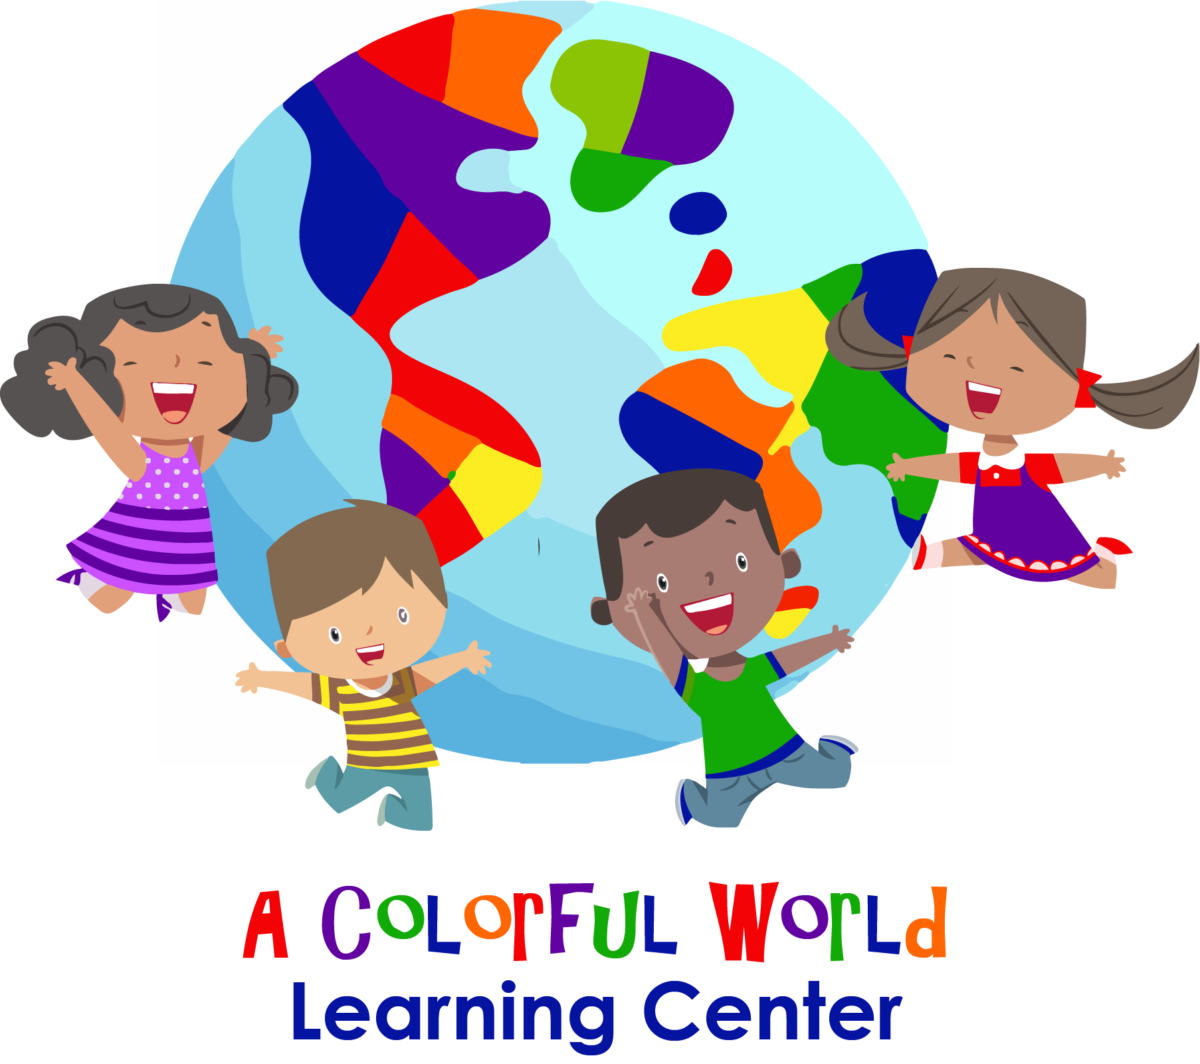 Kindergarten clipart teamwork. Early education in columbus